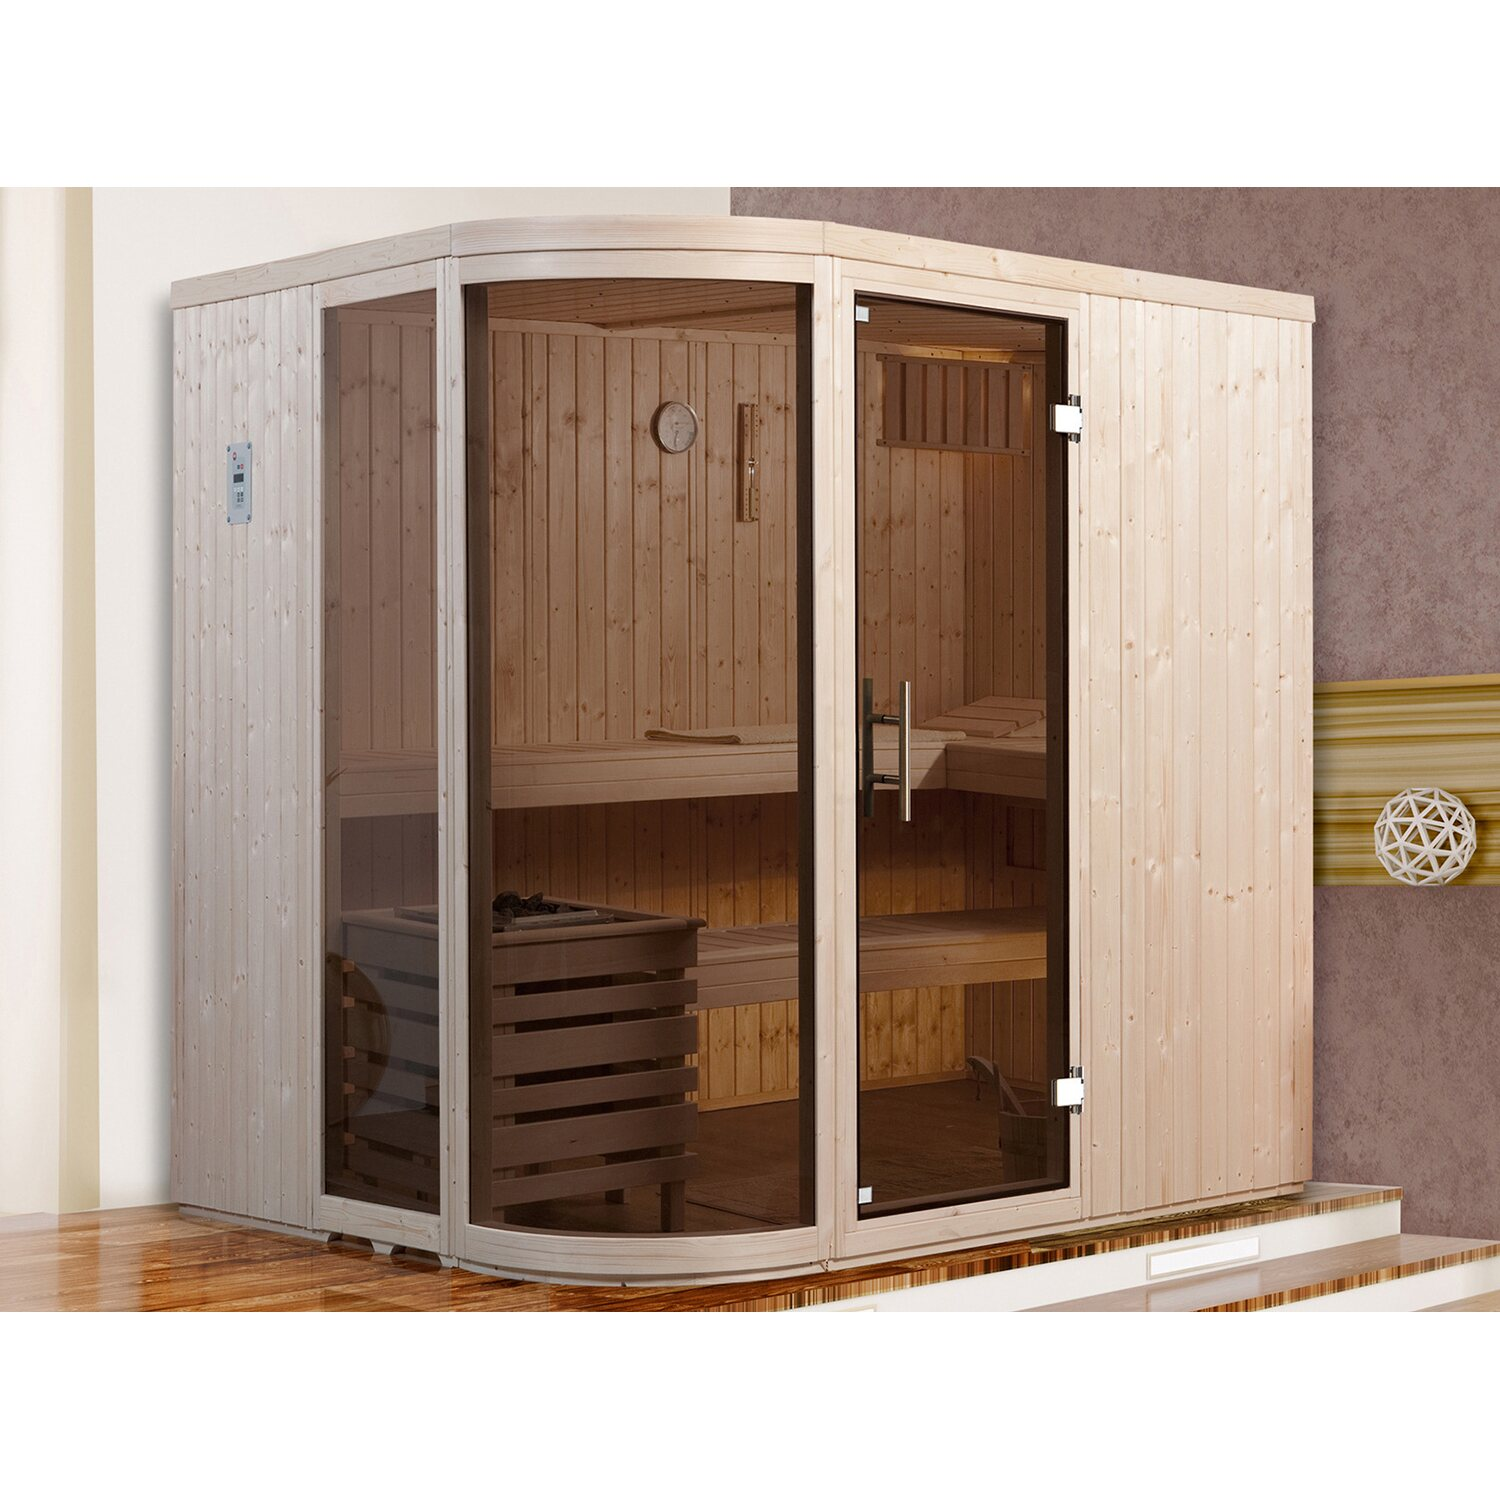 sauna glasfront kaufen simple eago eospa e with sauna glasfront kaufen good glassauna in allen. Black Bedroom Furniture Sets. Home Design Ideas